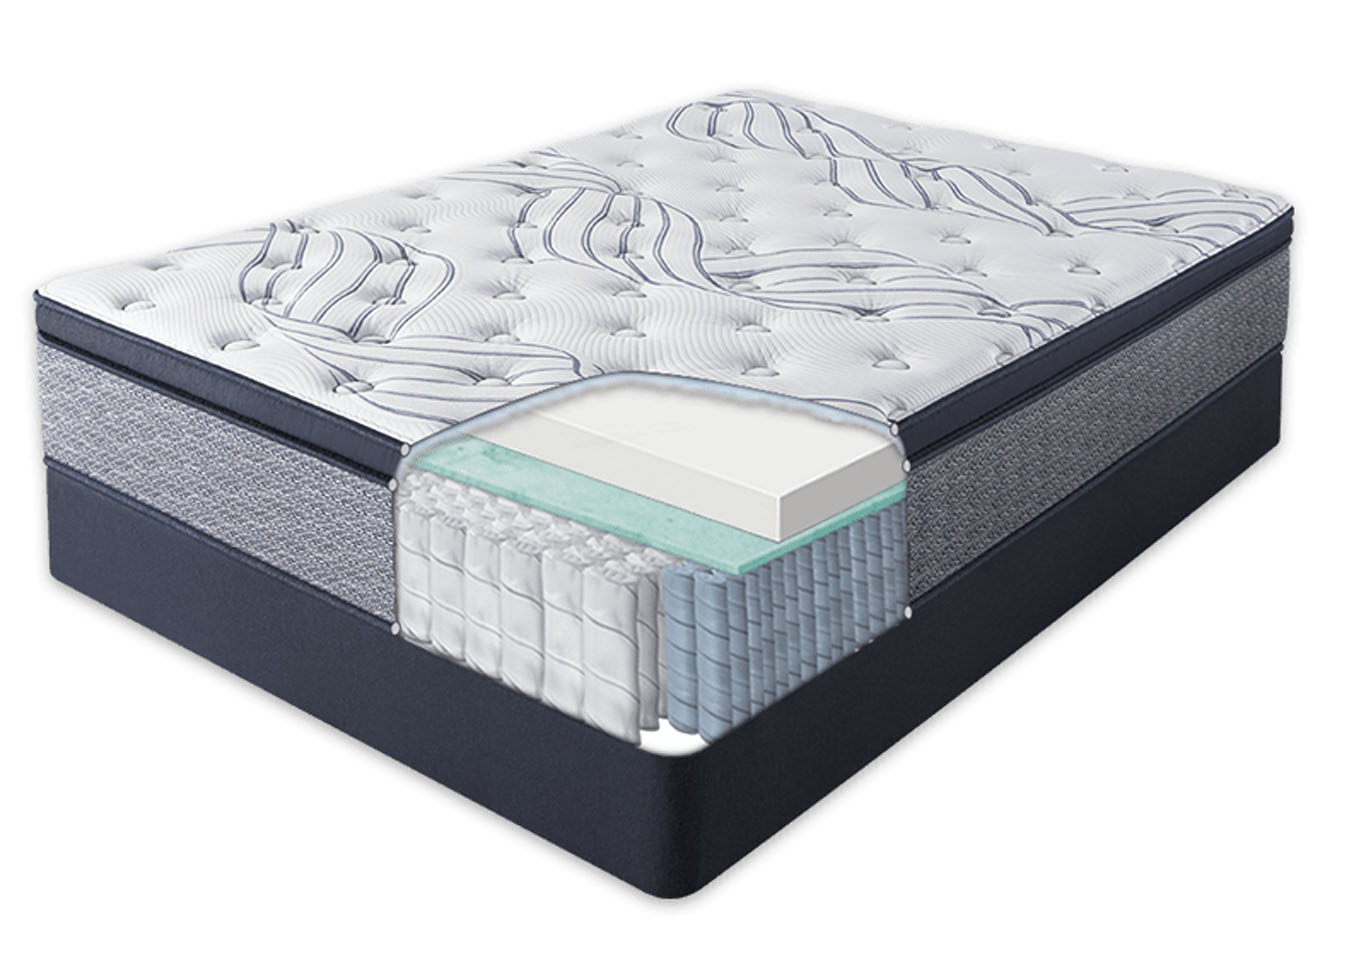 Serta Sleep Retreat Park City Pillow Top Mattress Queen,Instore